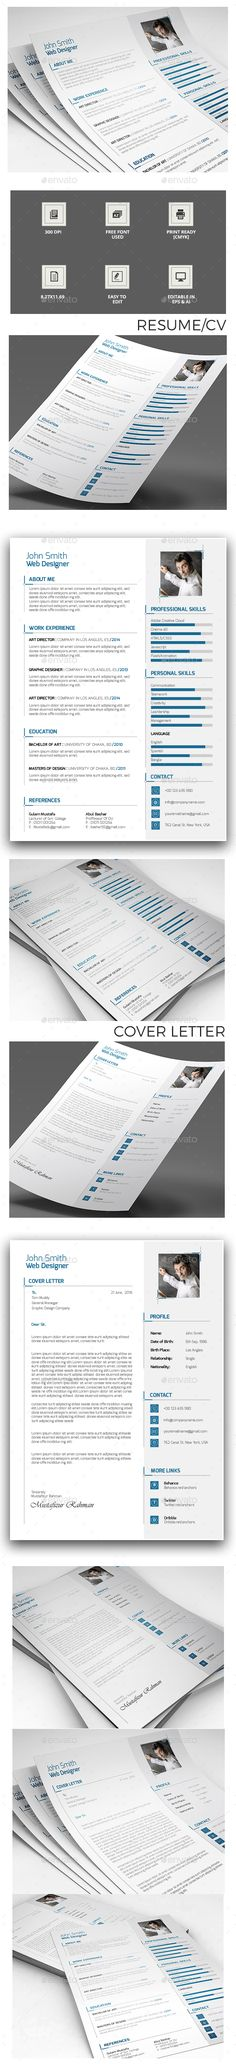 Create perfect resume and cover letter in minutes and get hired - how to create perfect resume